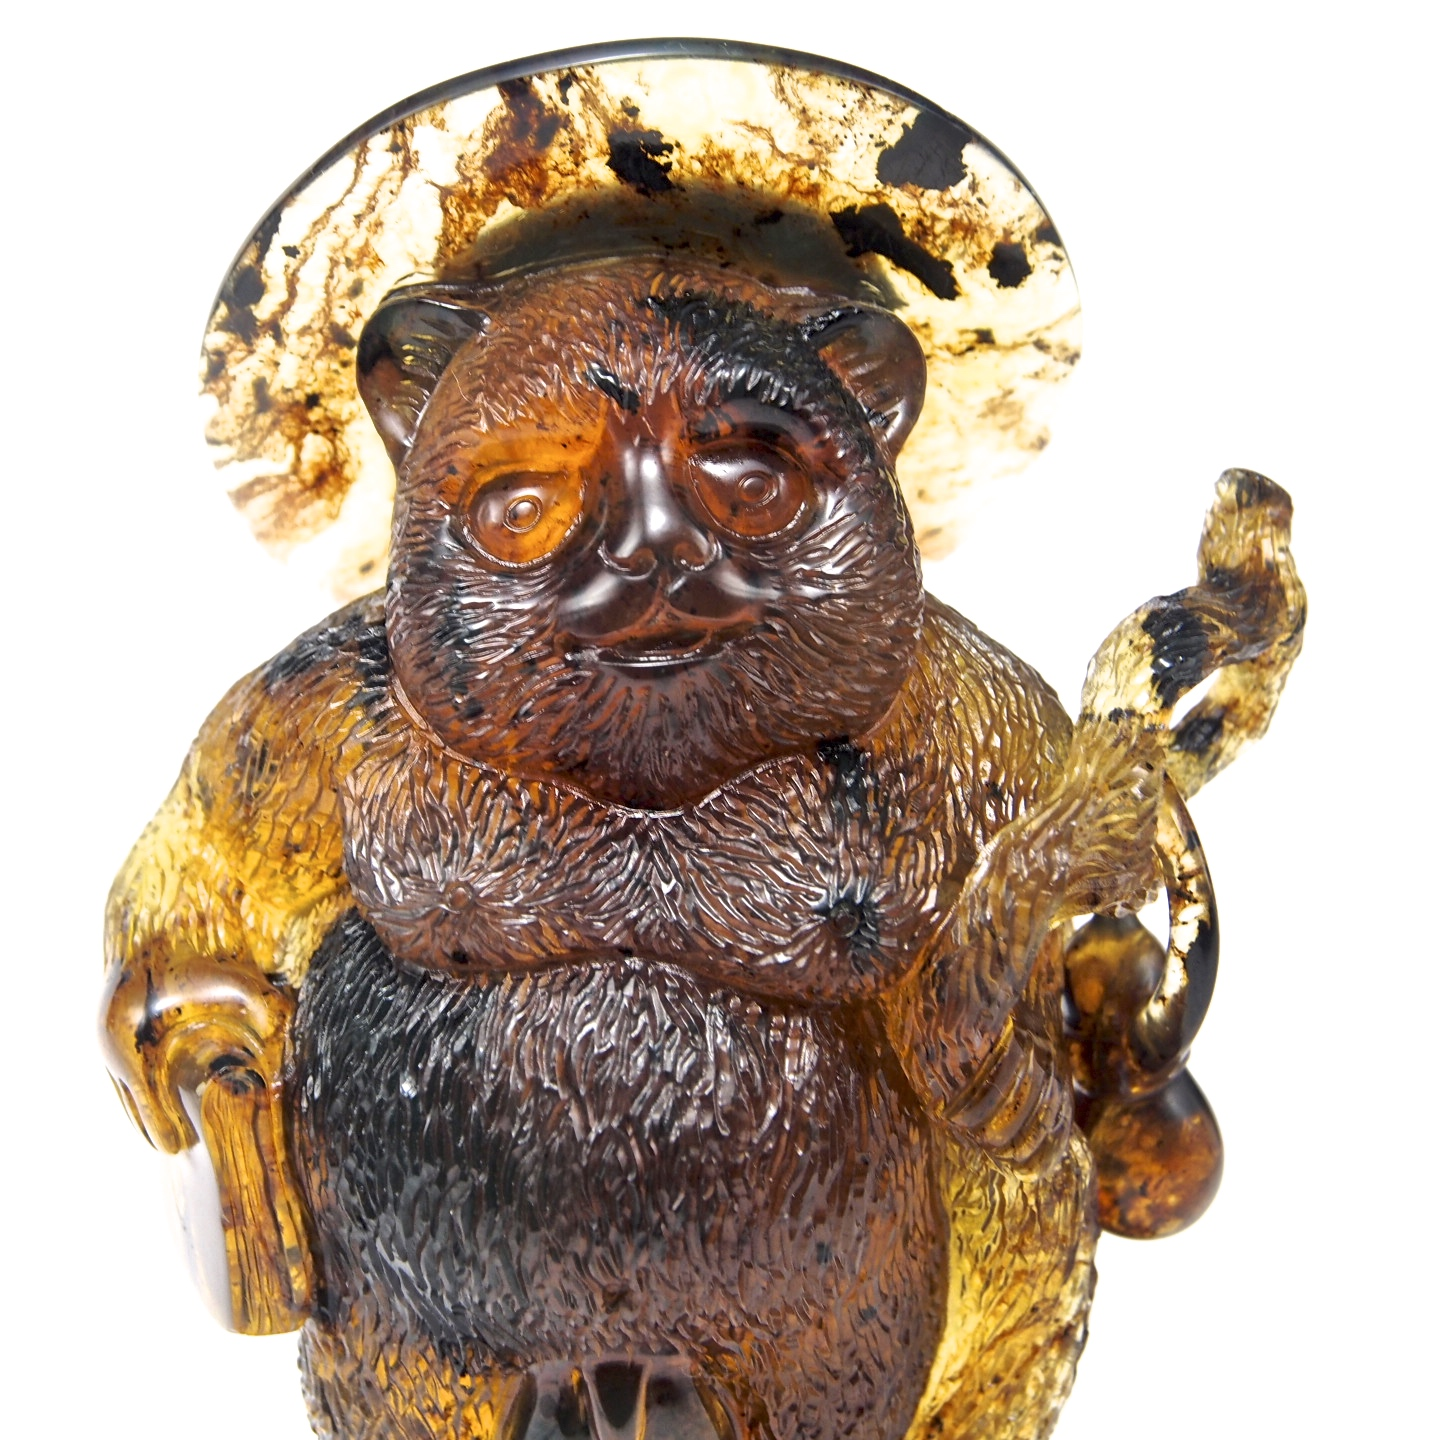 Mexican amber carving of Tanuki